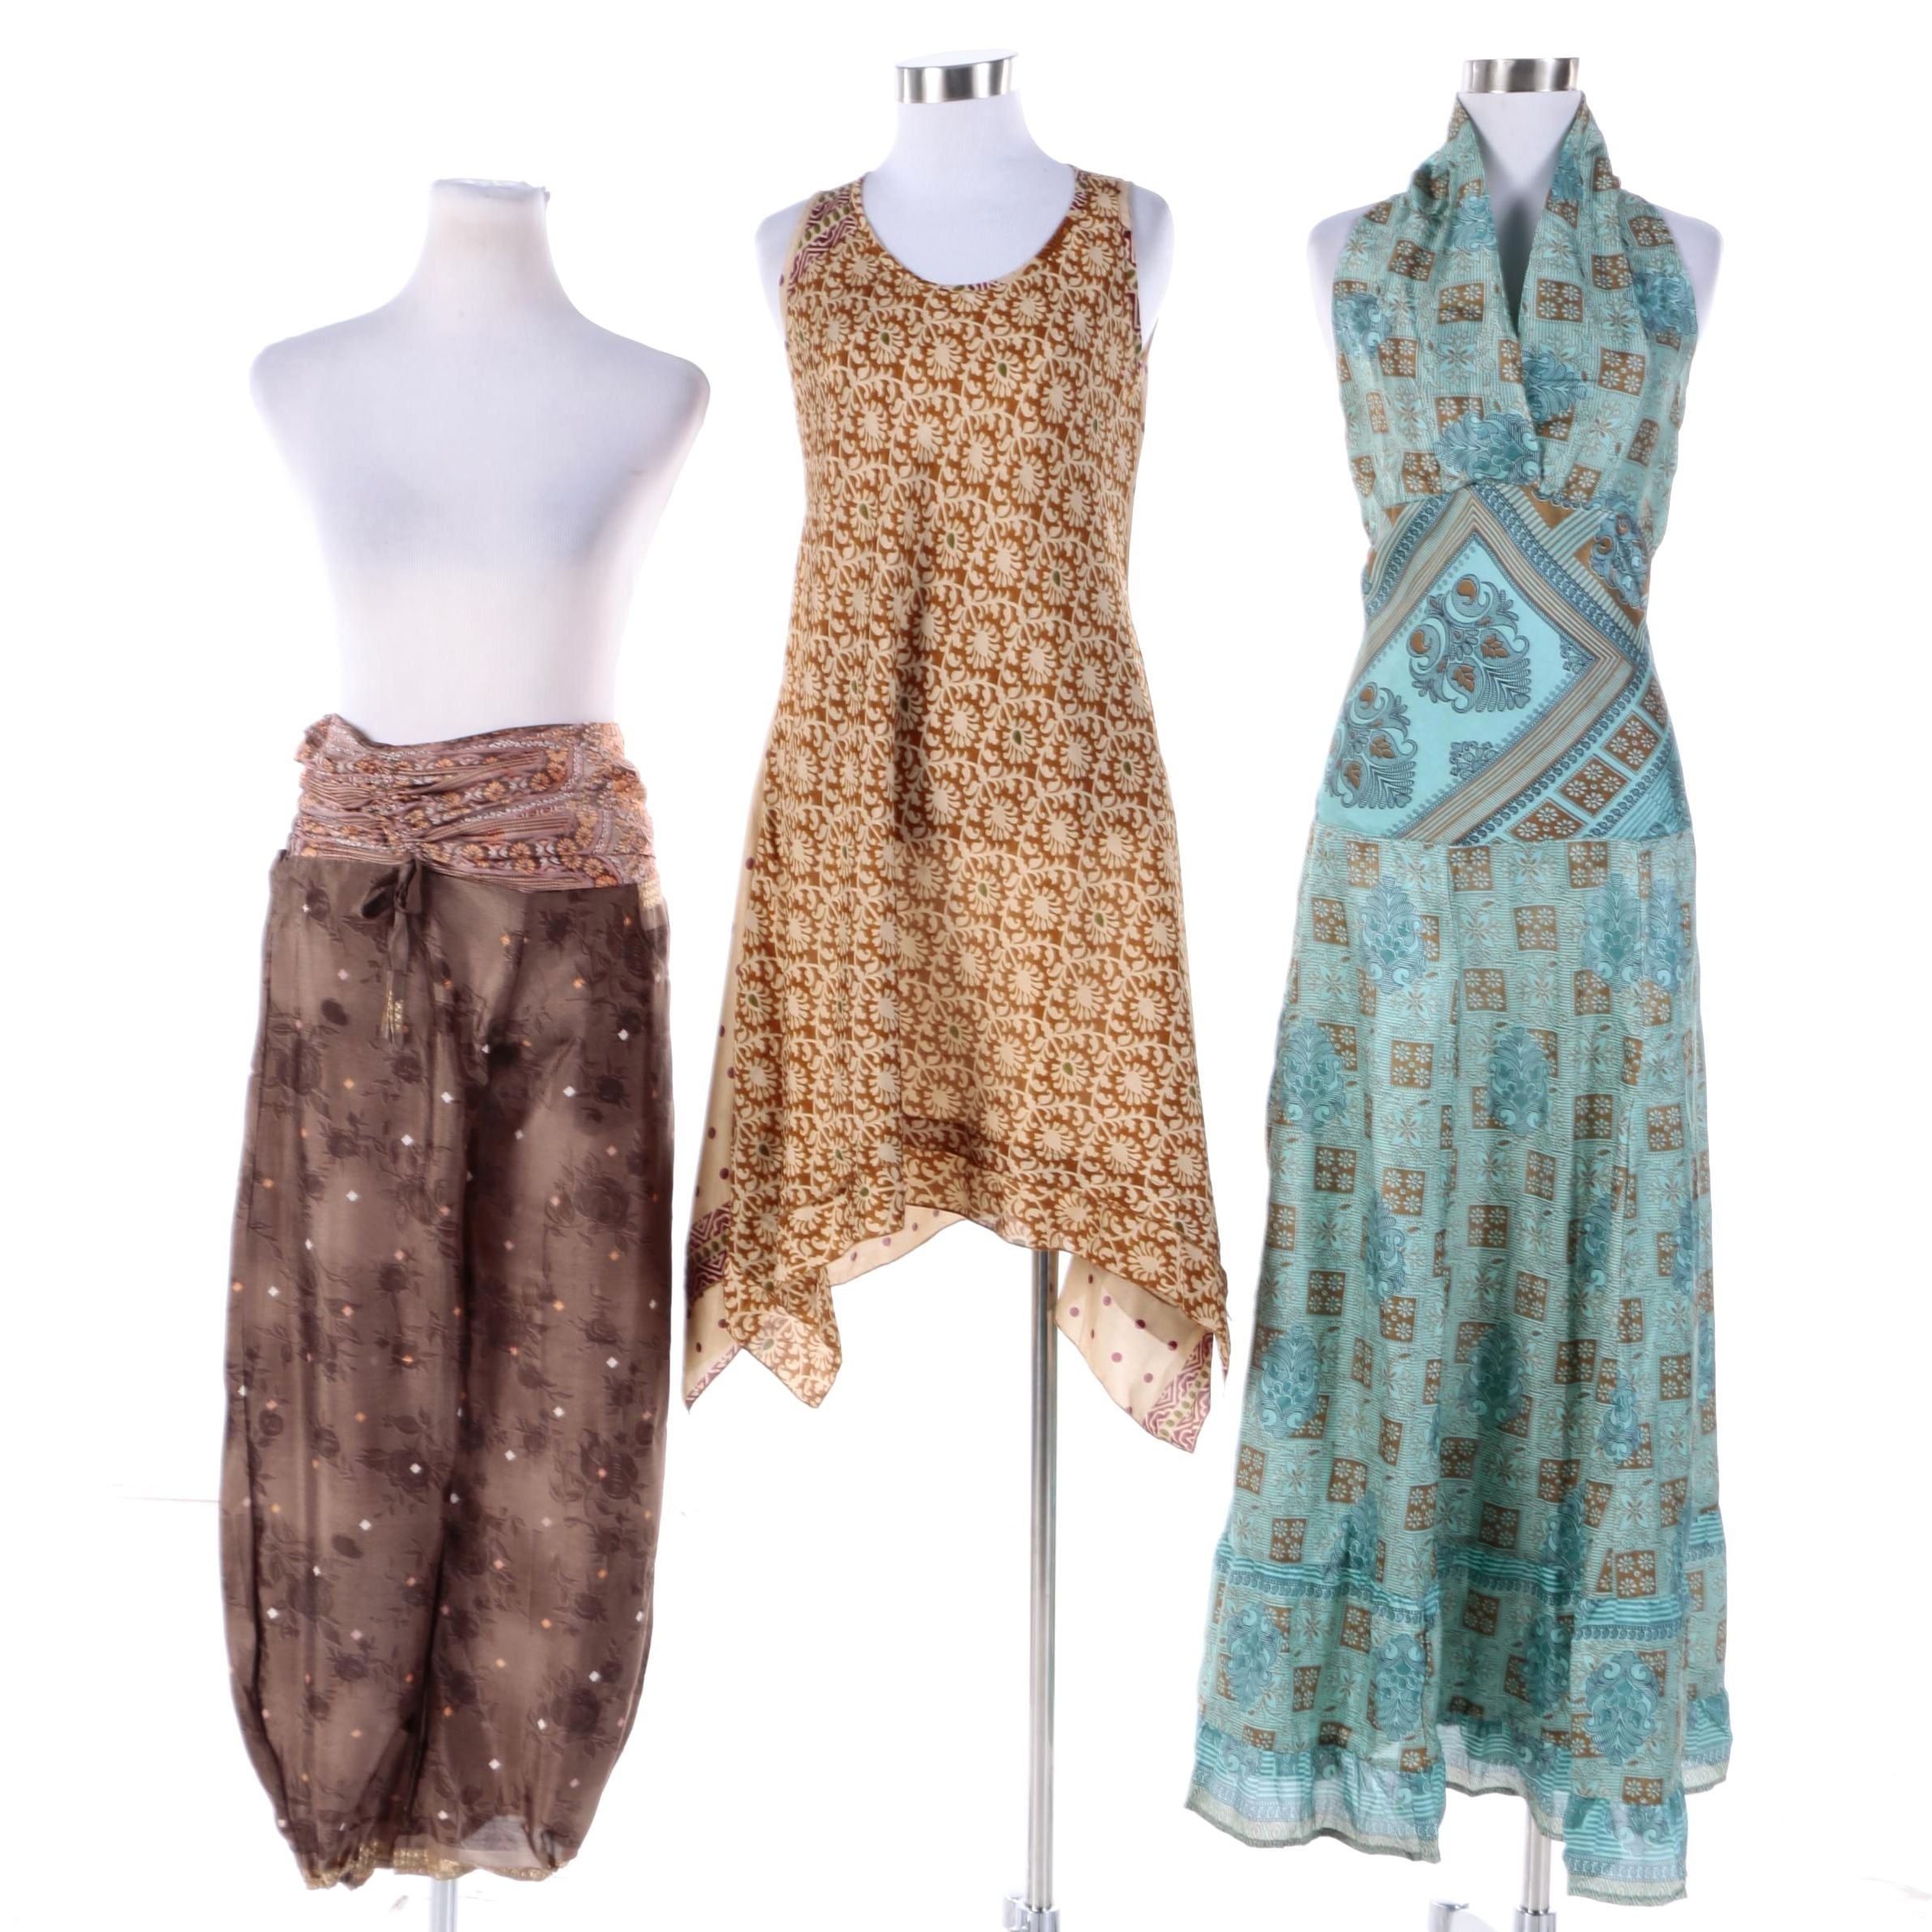 Women's Aller Simplement Upcycled Sari Fabric Pants, Dress and Tunic